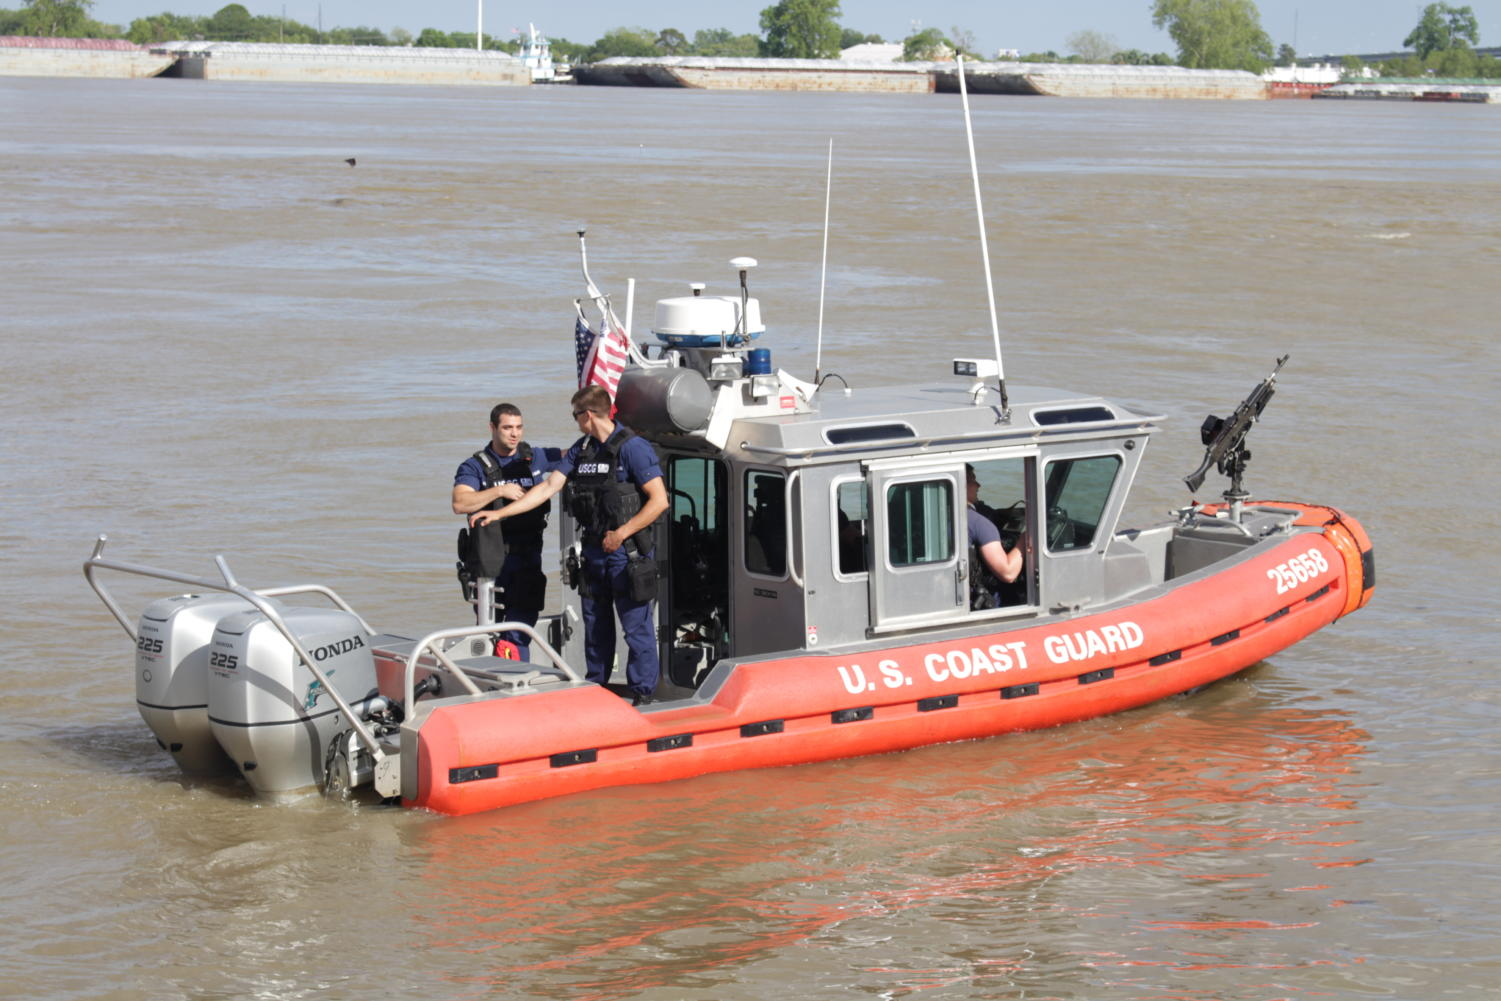 The U.S. Coast Guard monitor the impact from the oil spill Thursday afternoon. They shut down all traffic on the river and requested the RTA shut down the ferry leading from Algiers to Canal St.